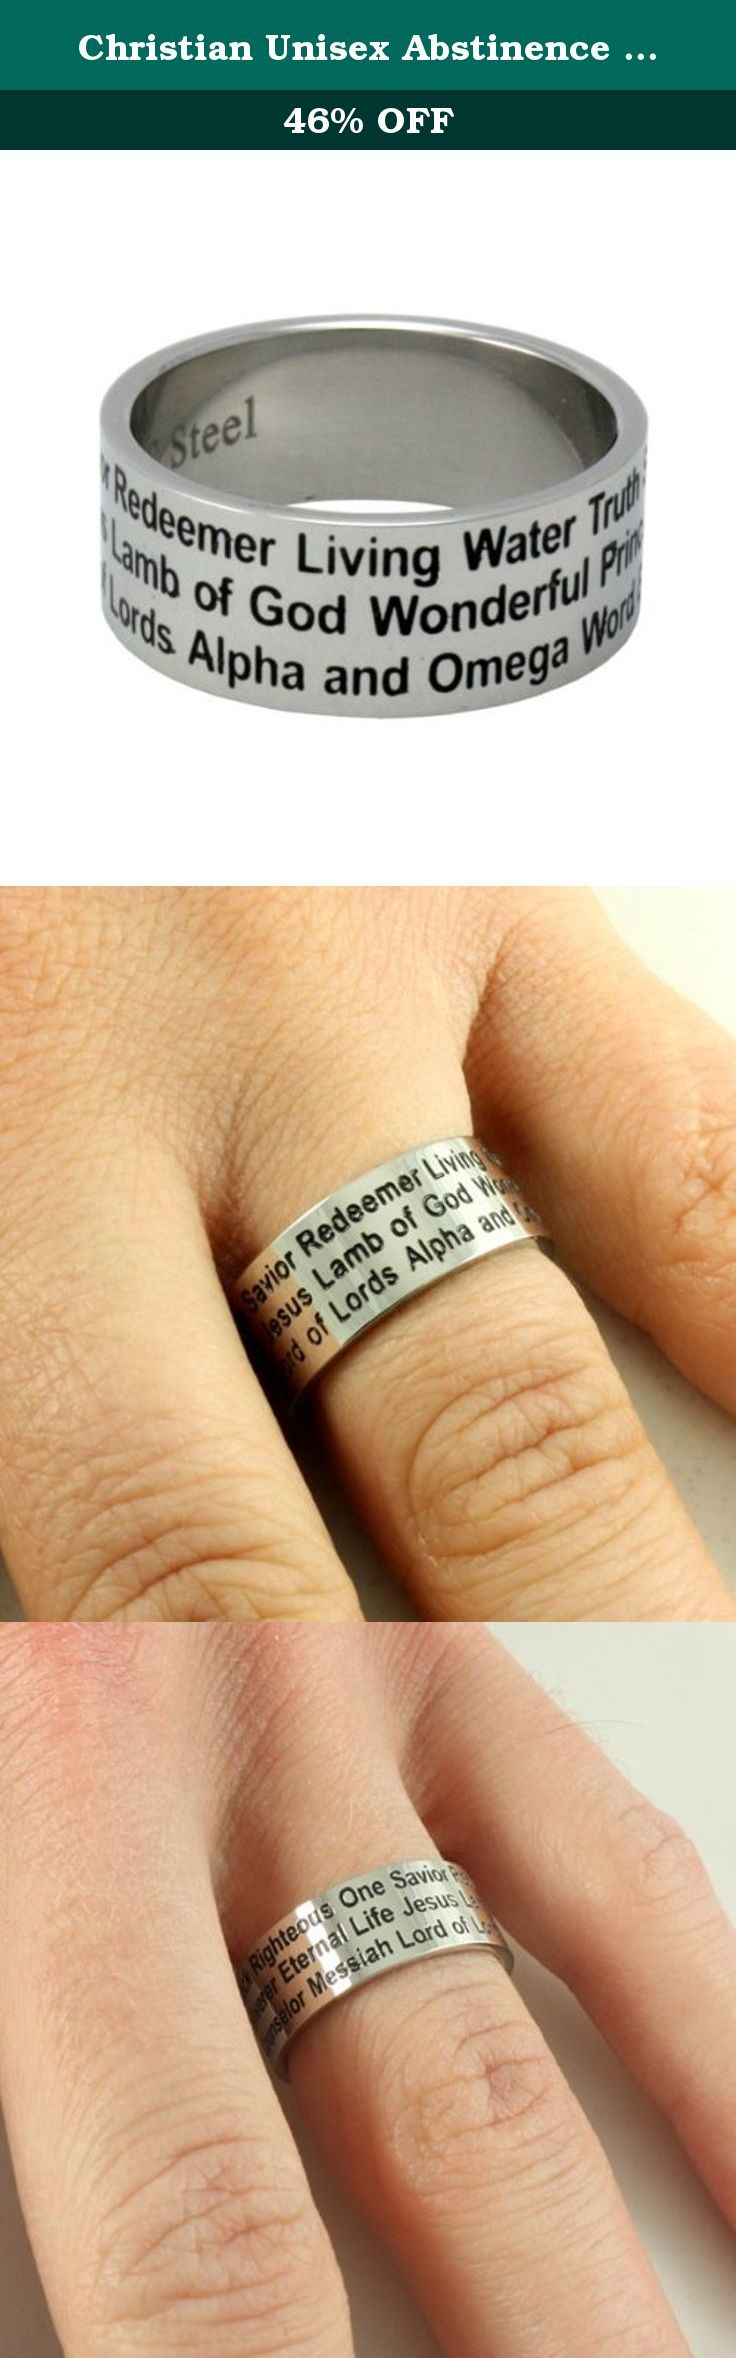 Christian Unisex Abstinence Stainless Steel 8mm Names of Jesus Ring - Righteous One, Savior, Redeemer, Eternal Life, Lamb of God, Messiah, Lord of Lords, Living Water, Wonderful, Alpha & Omega, Prince of Peace - Purity Ring for Guys & Girls, Size 6. STAINLESS STEEL NAMES OF JESUS RING STYLE 324-SIZE 6.